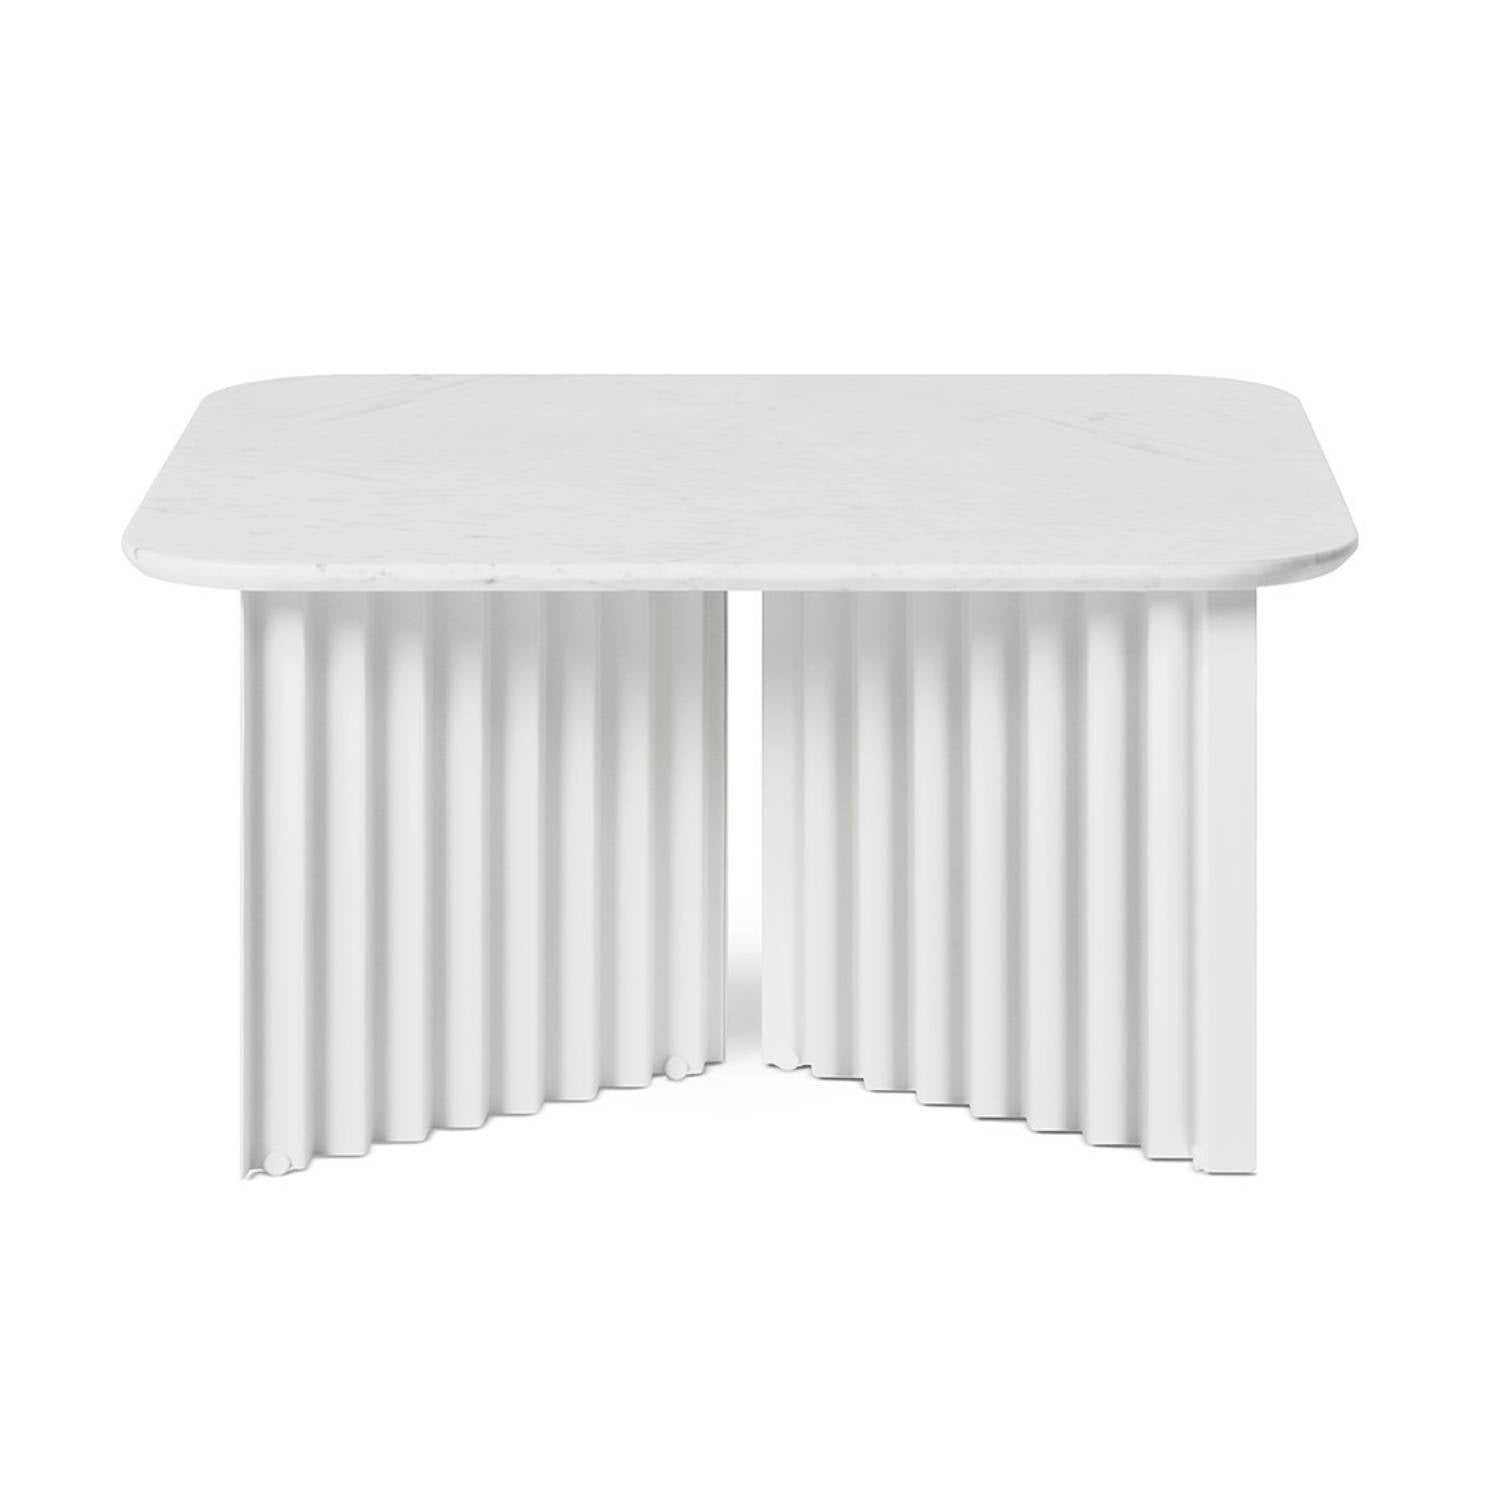 Plec Table: Marble Top: Medium + White Carrara